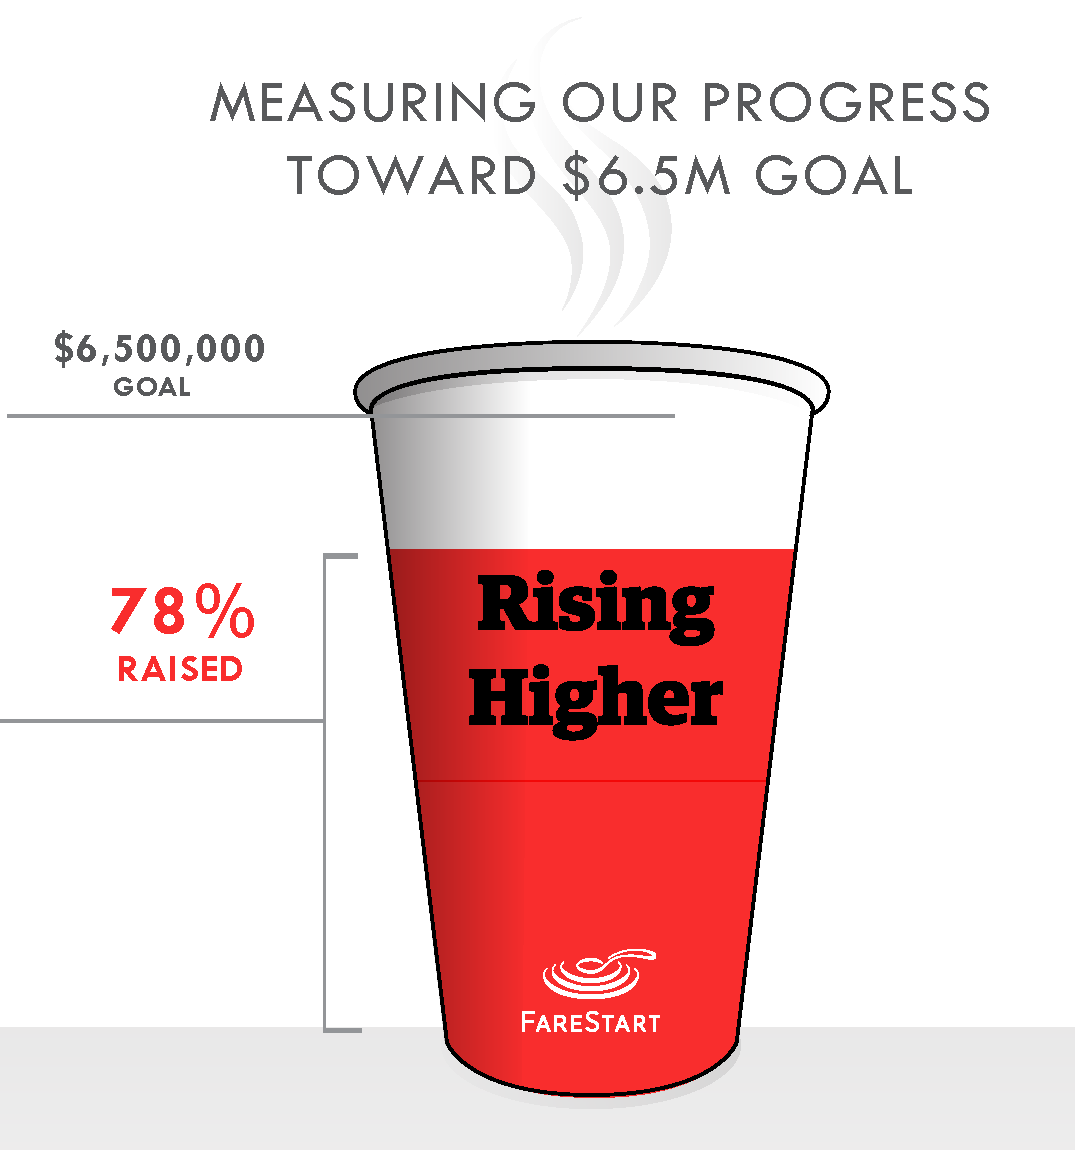 Rising Higher Campaign